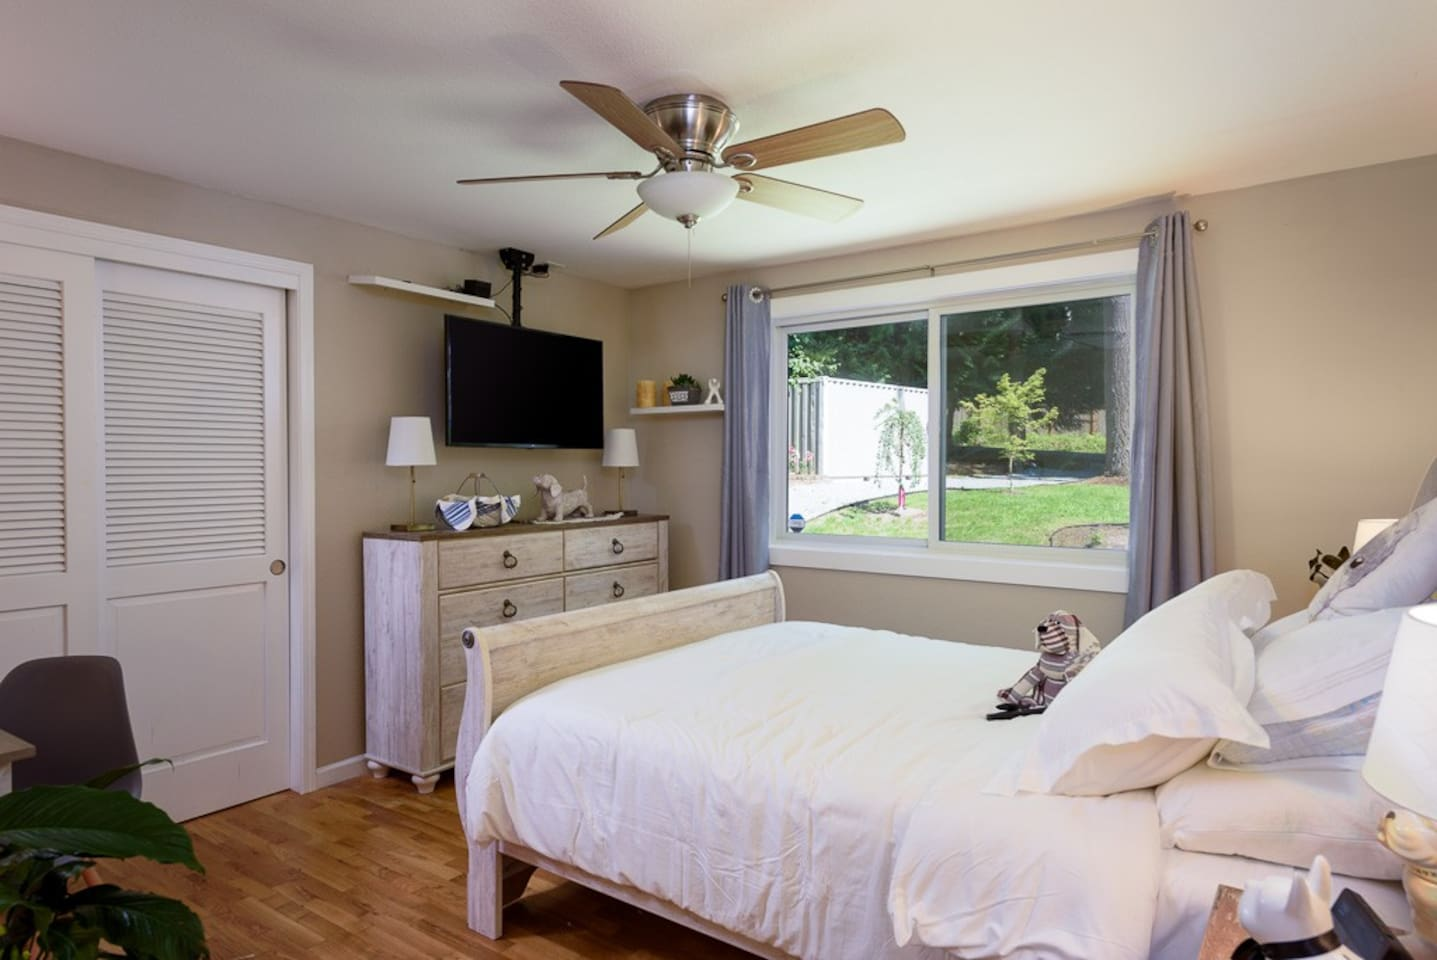 Alexa Enhanced GUEST ROOM  will BE GREAT for a single person or a couple, the decor will allow you to reminisce about your pets back home... WORK AT THE DAY DESK, WATCH A FIRST RUN MOVIE OR DOZE OFF TO IN ROOM MUSIC